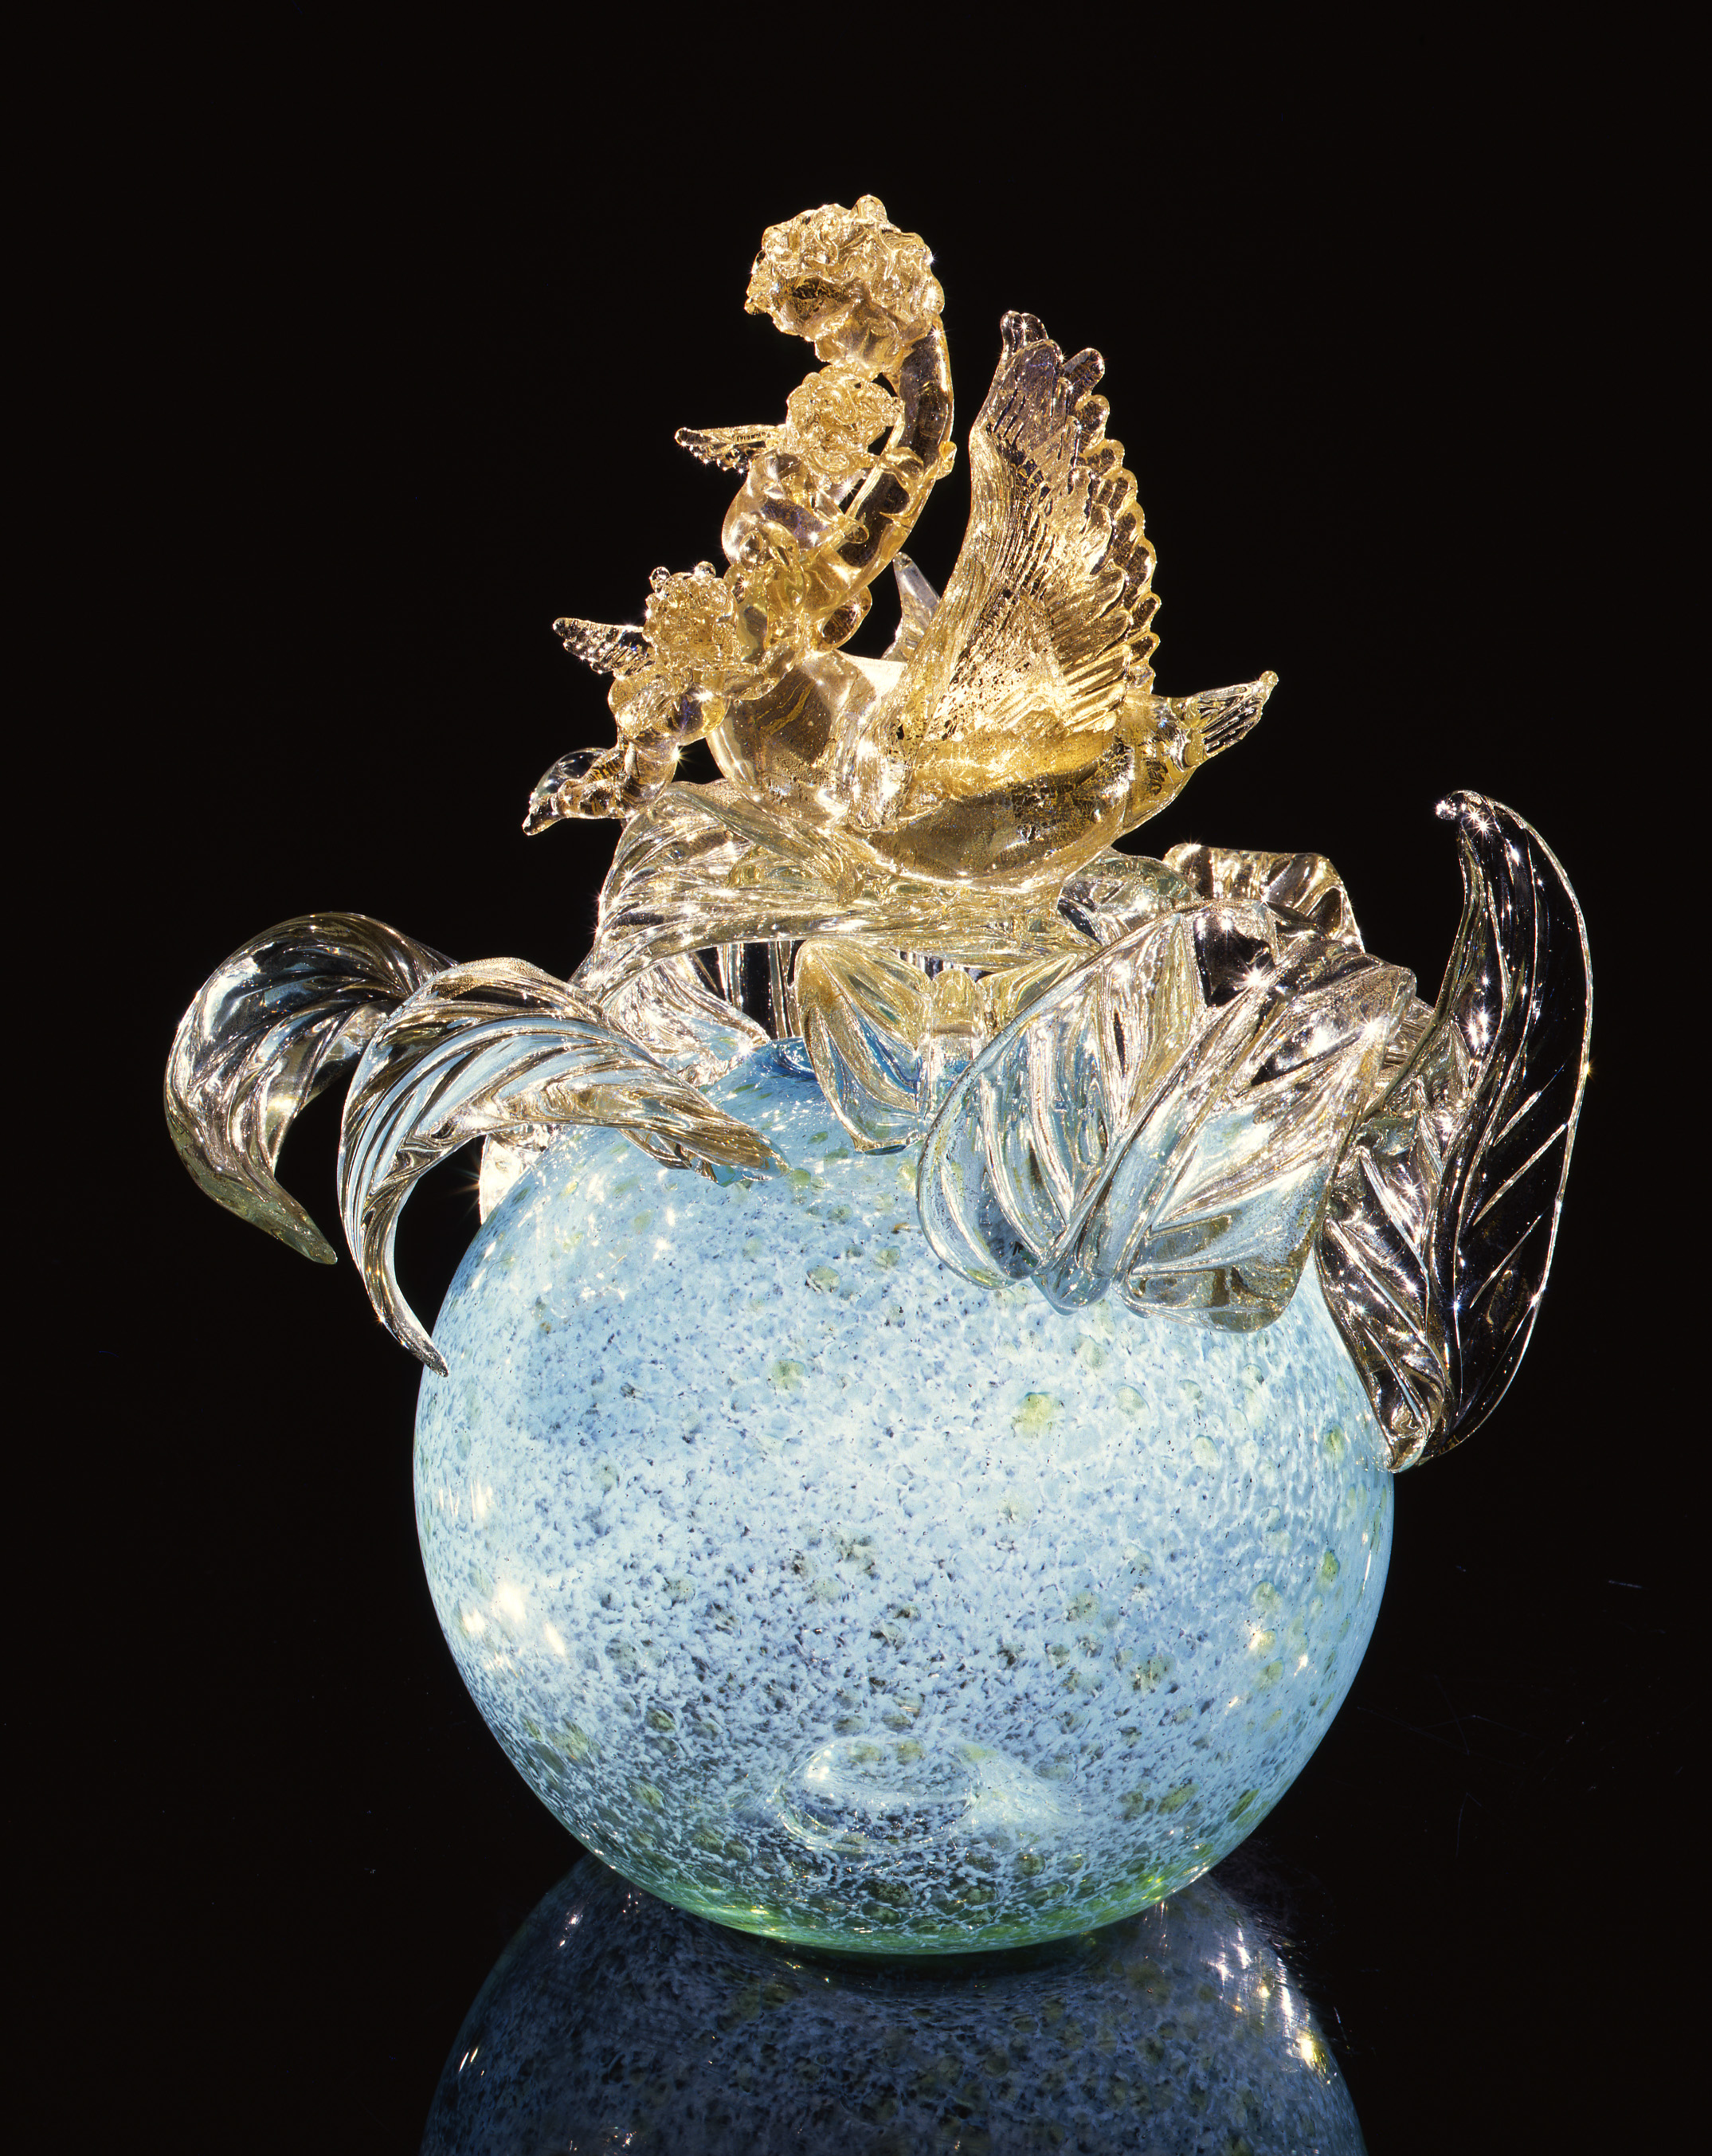 Dale Chihuly,  Gilded Mystic Blue Putto Venetian with Swan and Cherubs  (1994, glass, 19 x 15 x 15 inches)